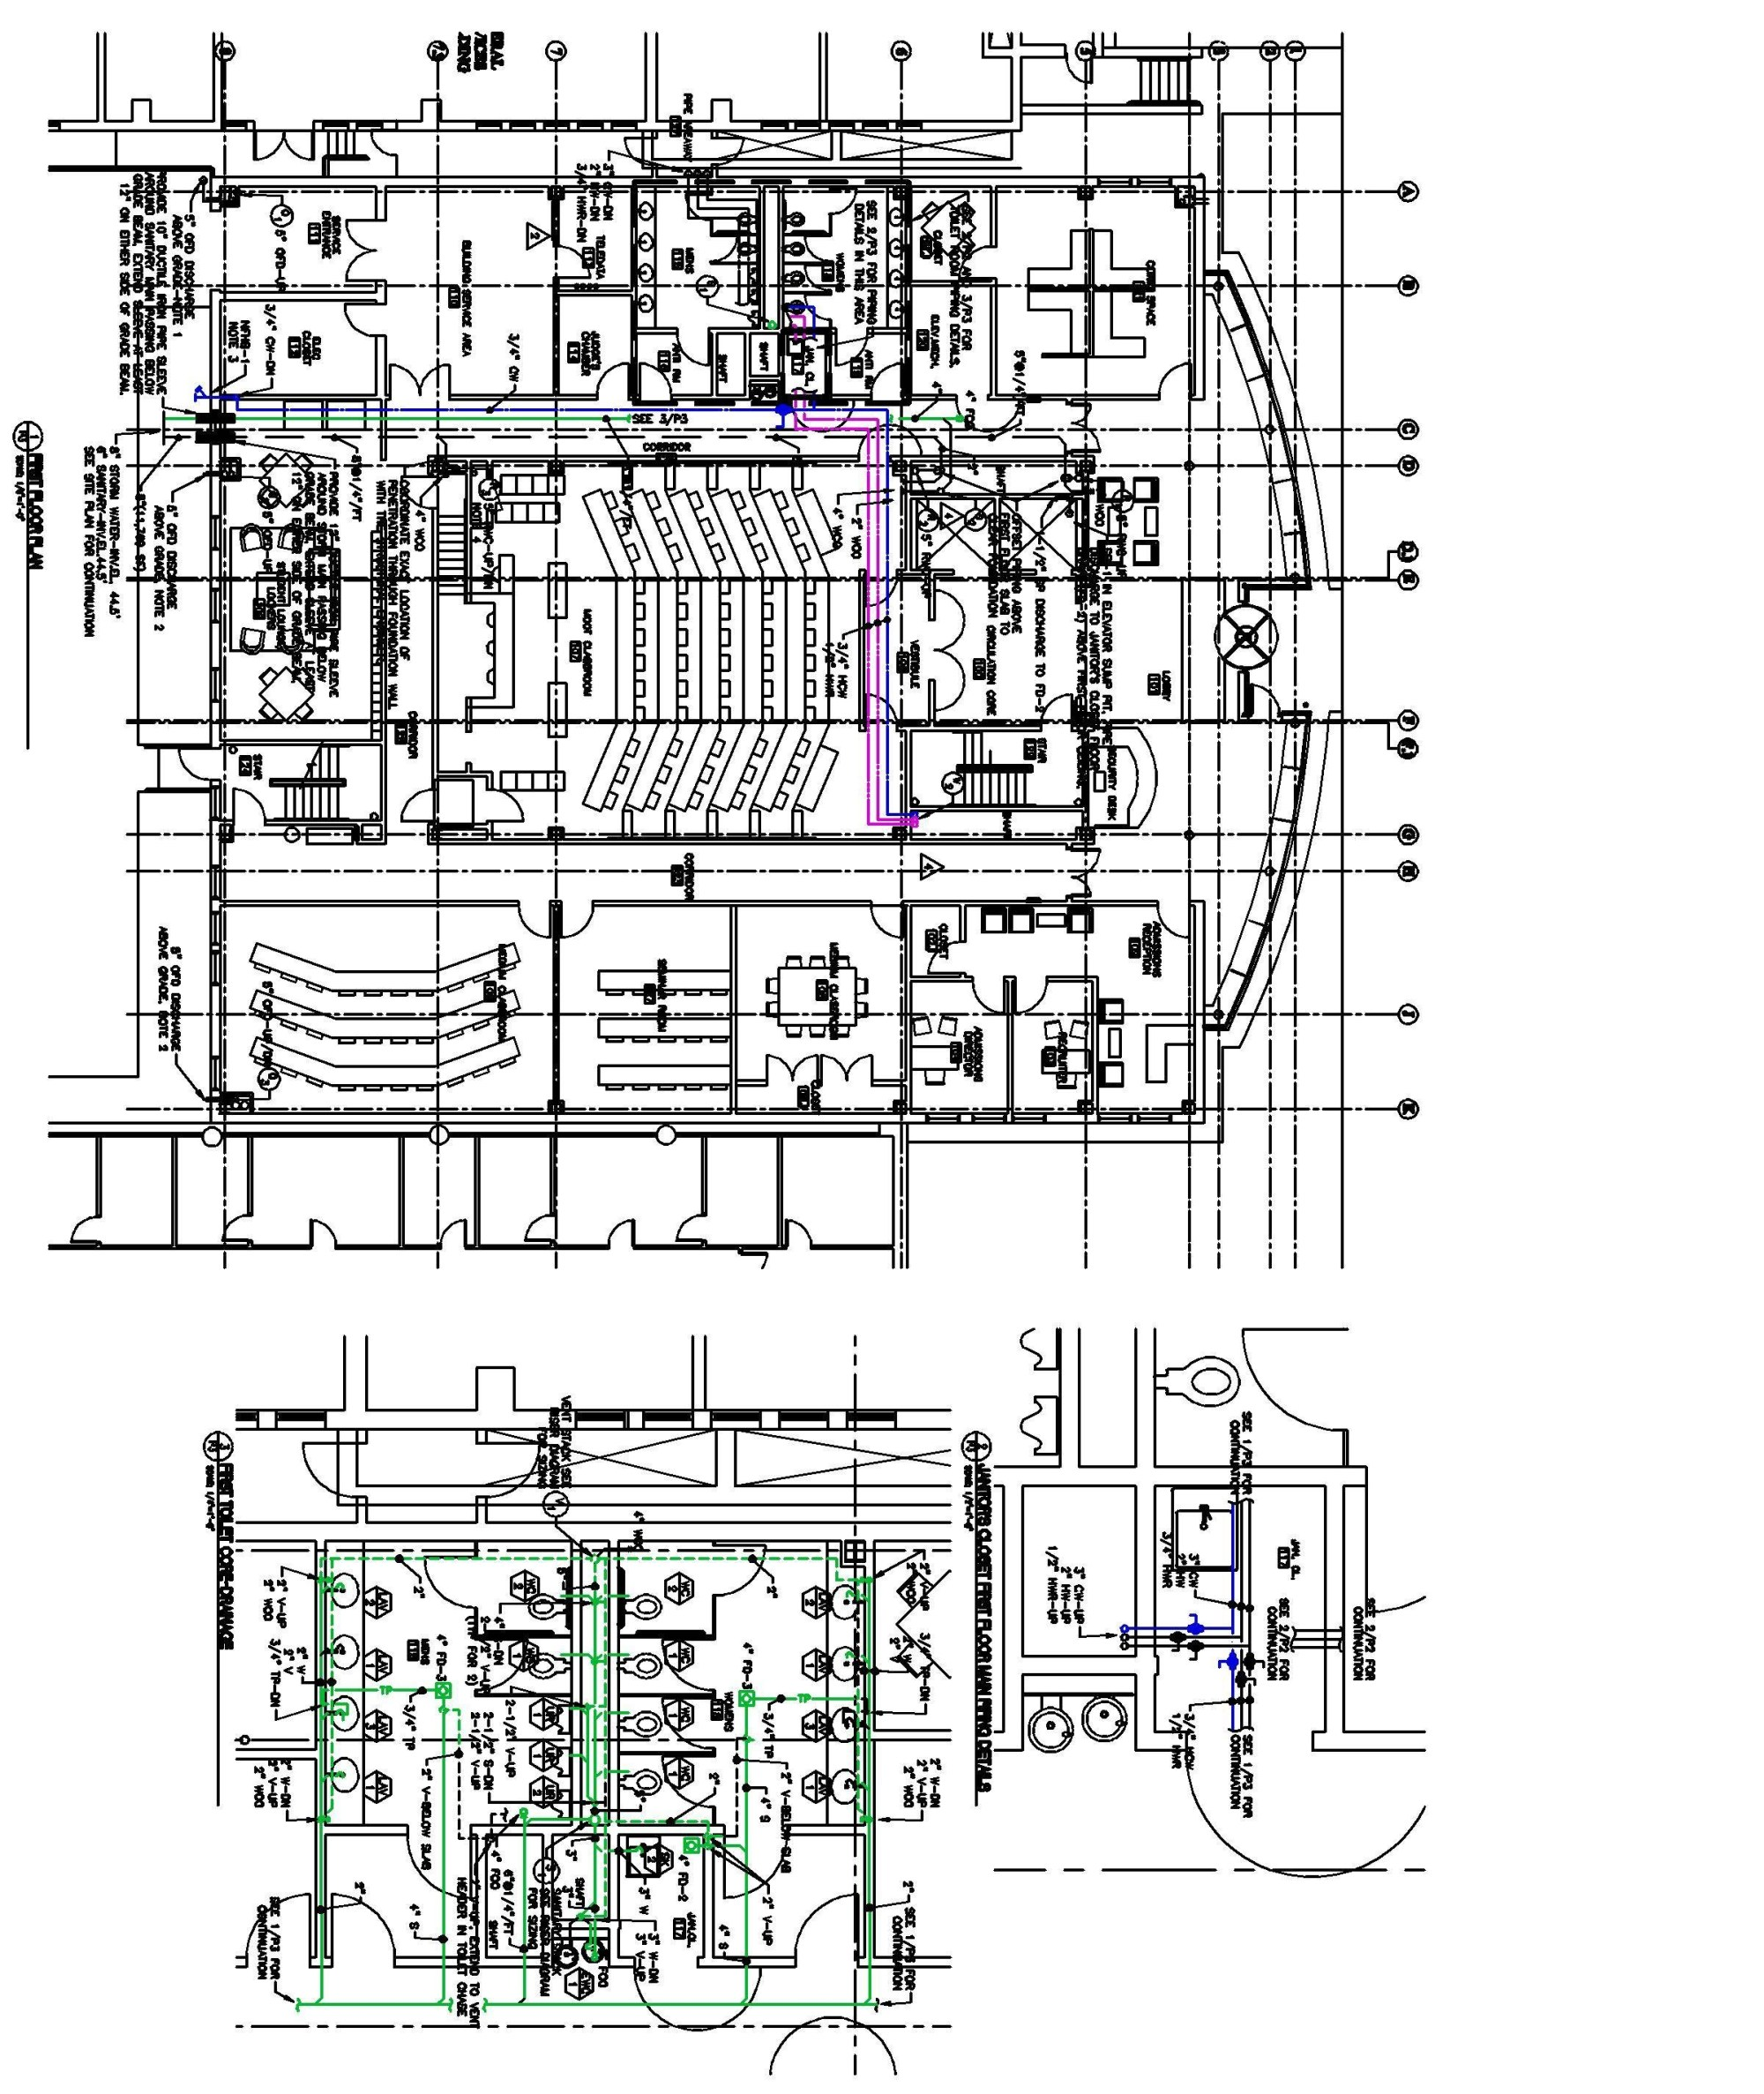 hight resolution of hvac plumbing gsb building hagerty library law school first floor second floor third floor and fourth floor